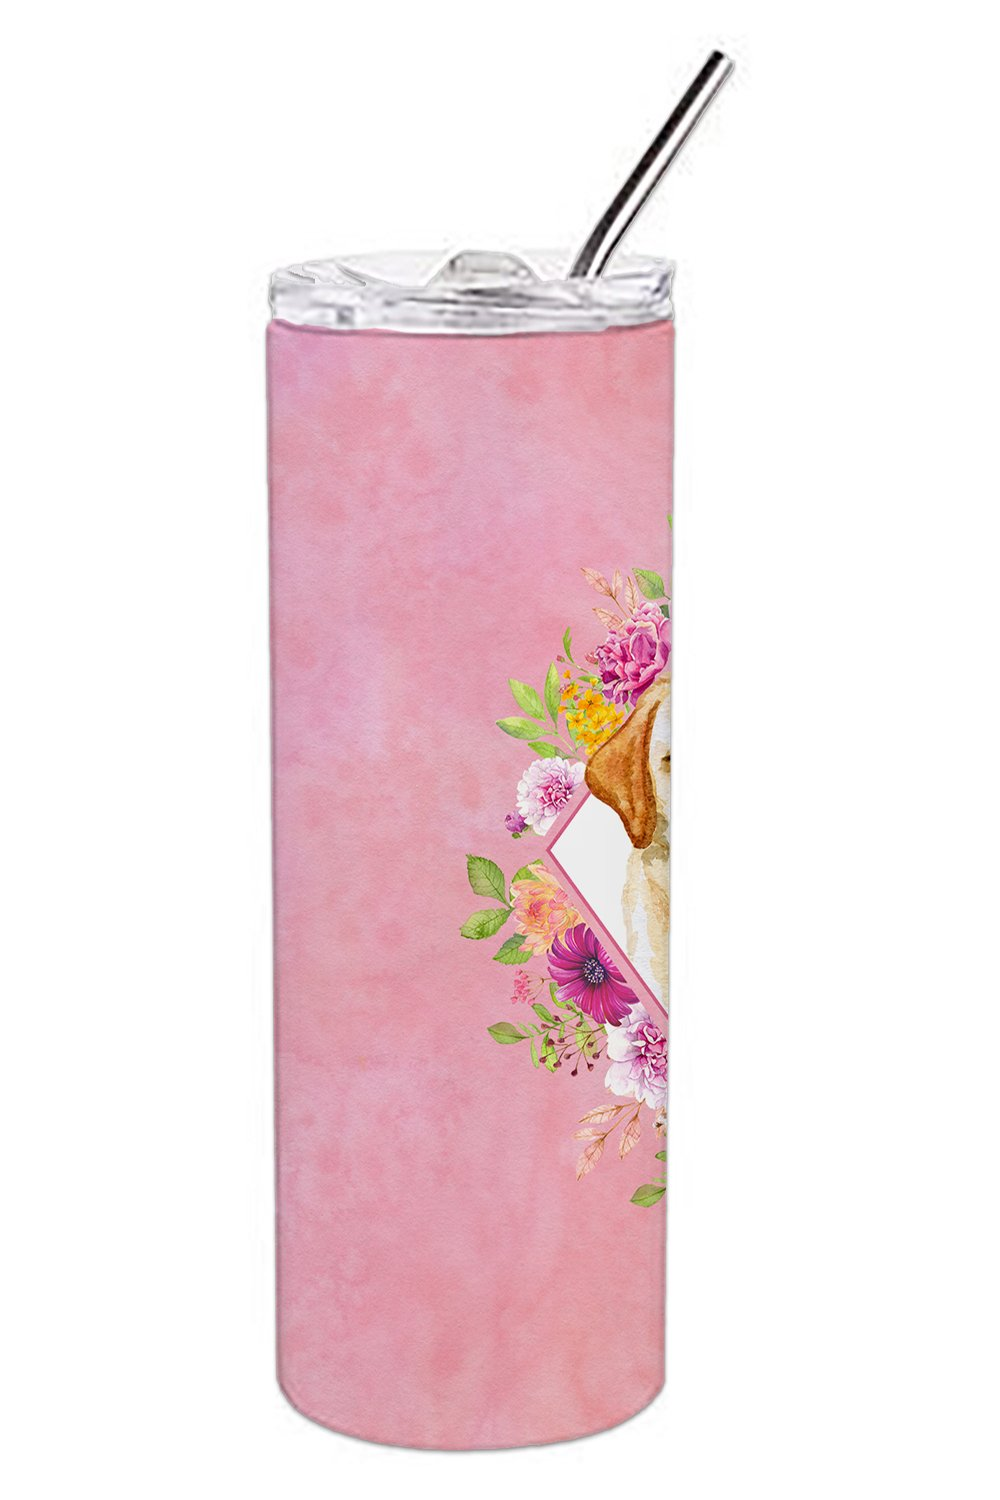 Golden Retriever Pink Flowers Double Walled Stainless Steel 20 oz Skinny Tumbler CK4149TBL20 by Caroline's Treasures